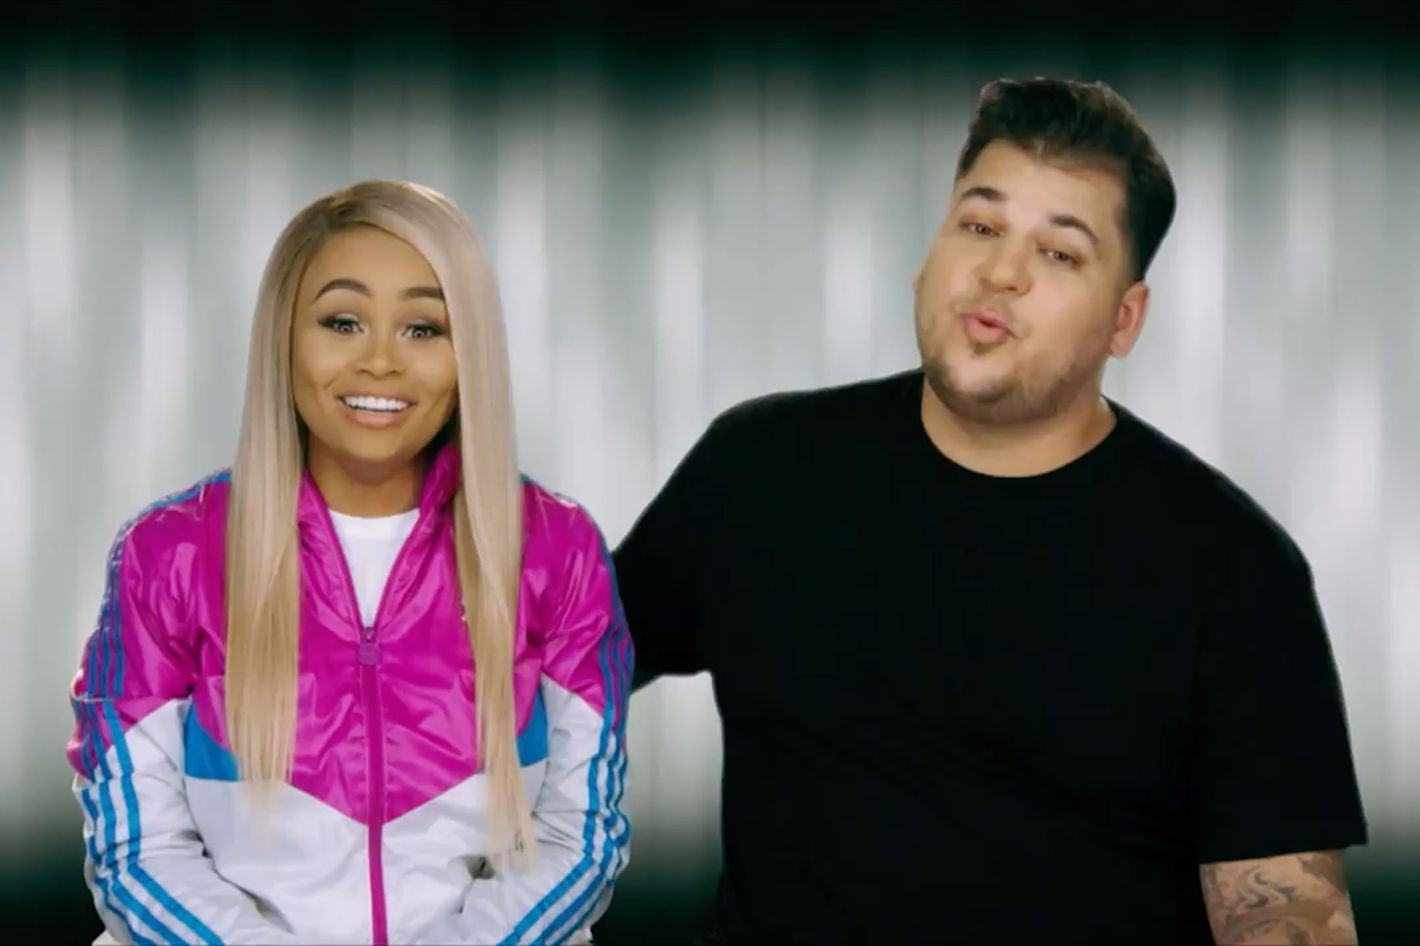 Backdoor To Chyna Pics rob & chyna episode 6 recap: chyna steals rob's toothbrush